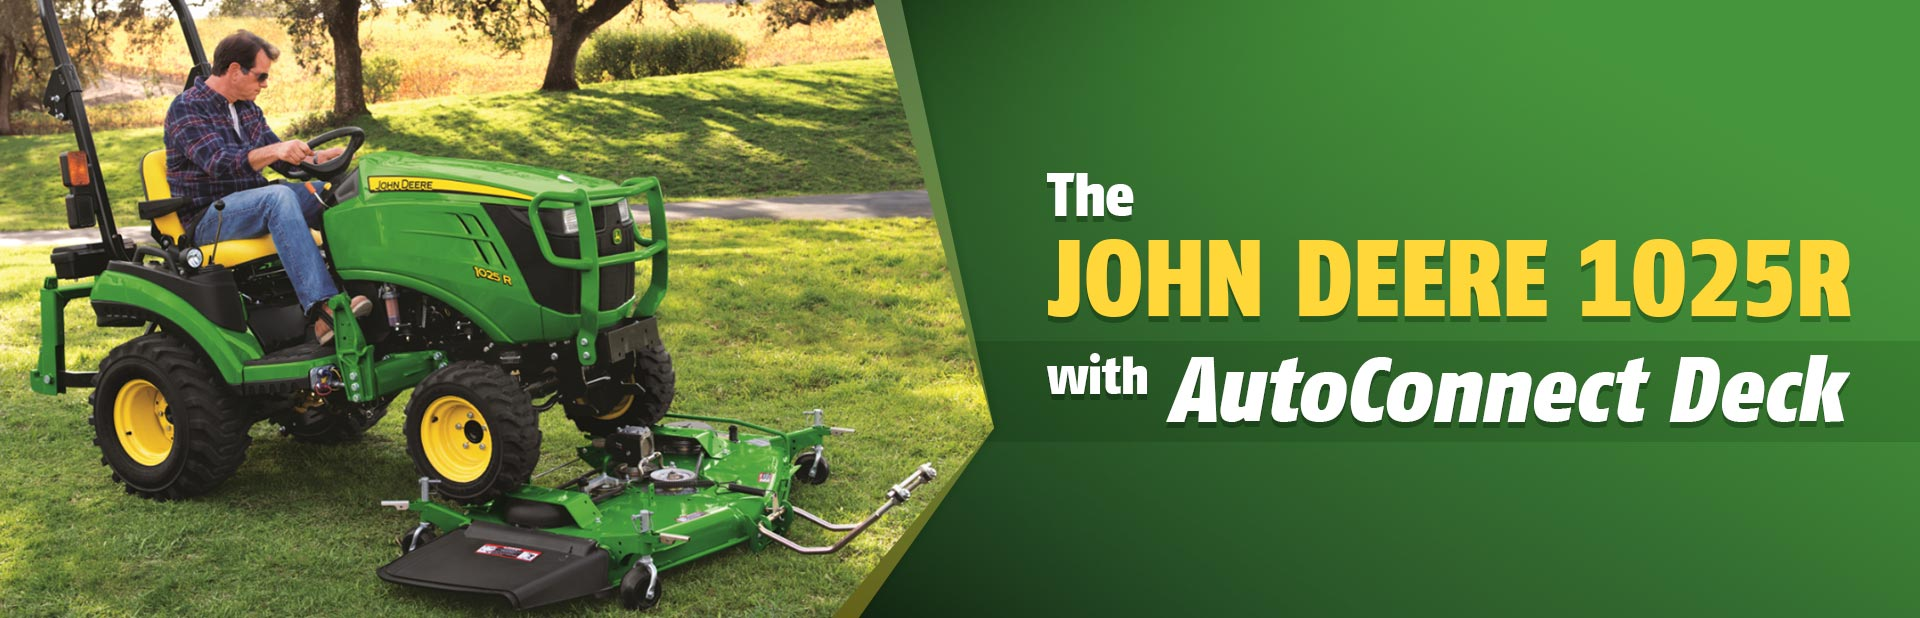 Erb Equipment carries the John Deere 1025R with AutoConnect Deck!